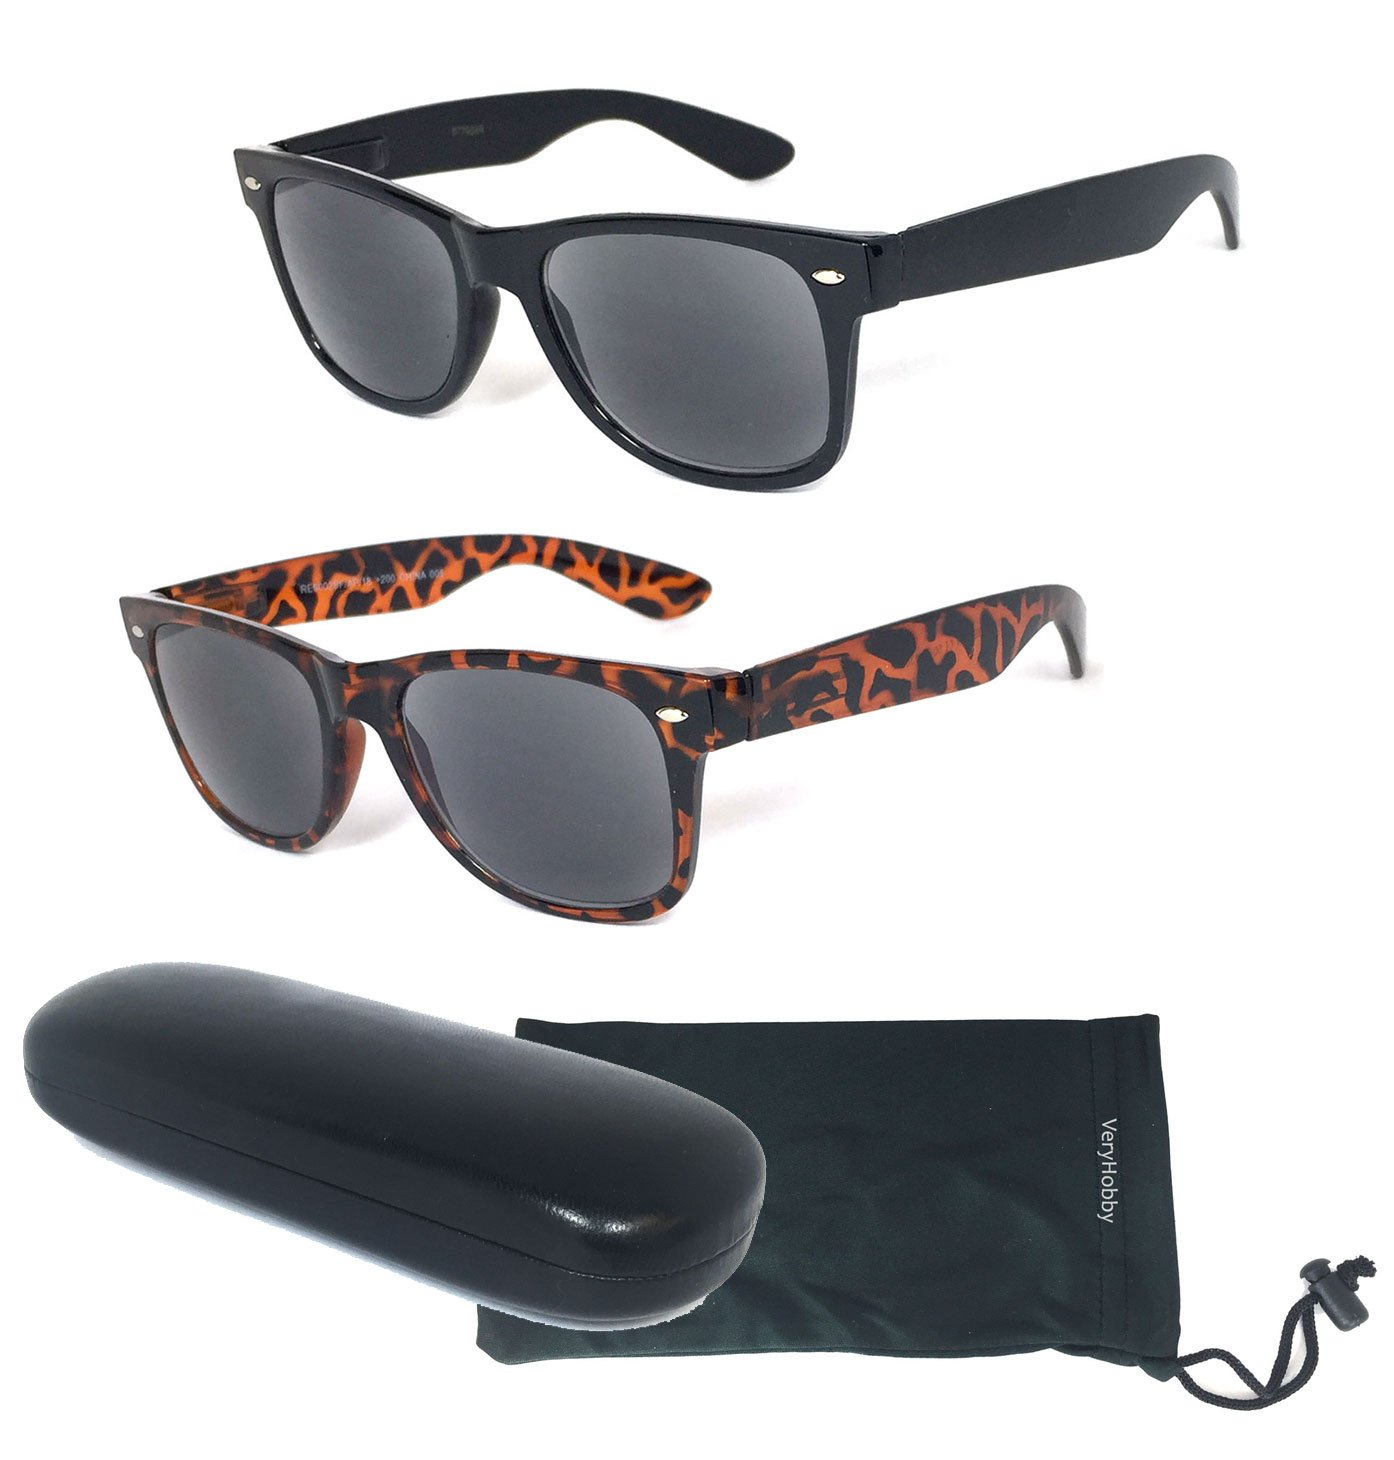 1 Hard Case /& 1 Soft Pouch Included Outdoor Reading Sunglasses NOT Bifocals by VeryHobby +1.50 2 Pair Combo Retro Wayfarer Full Reading Sunglasses